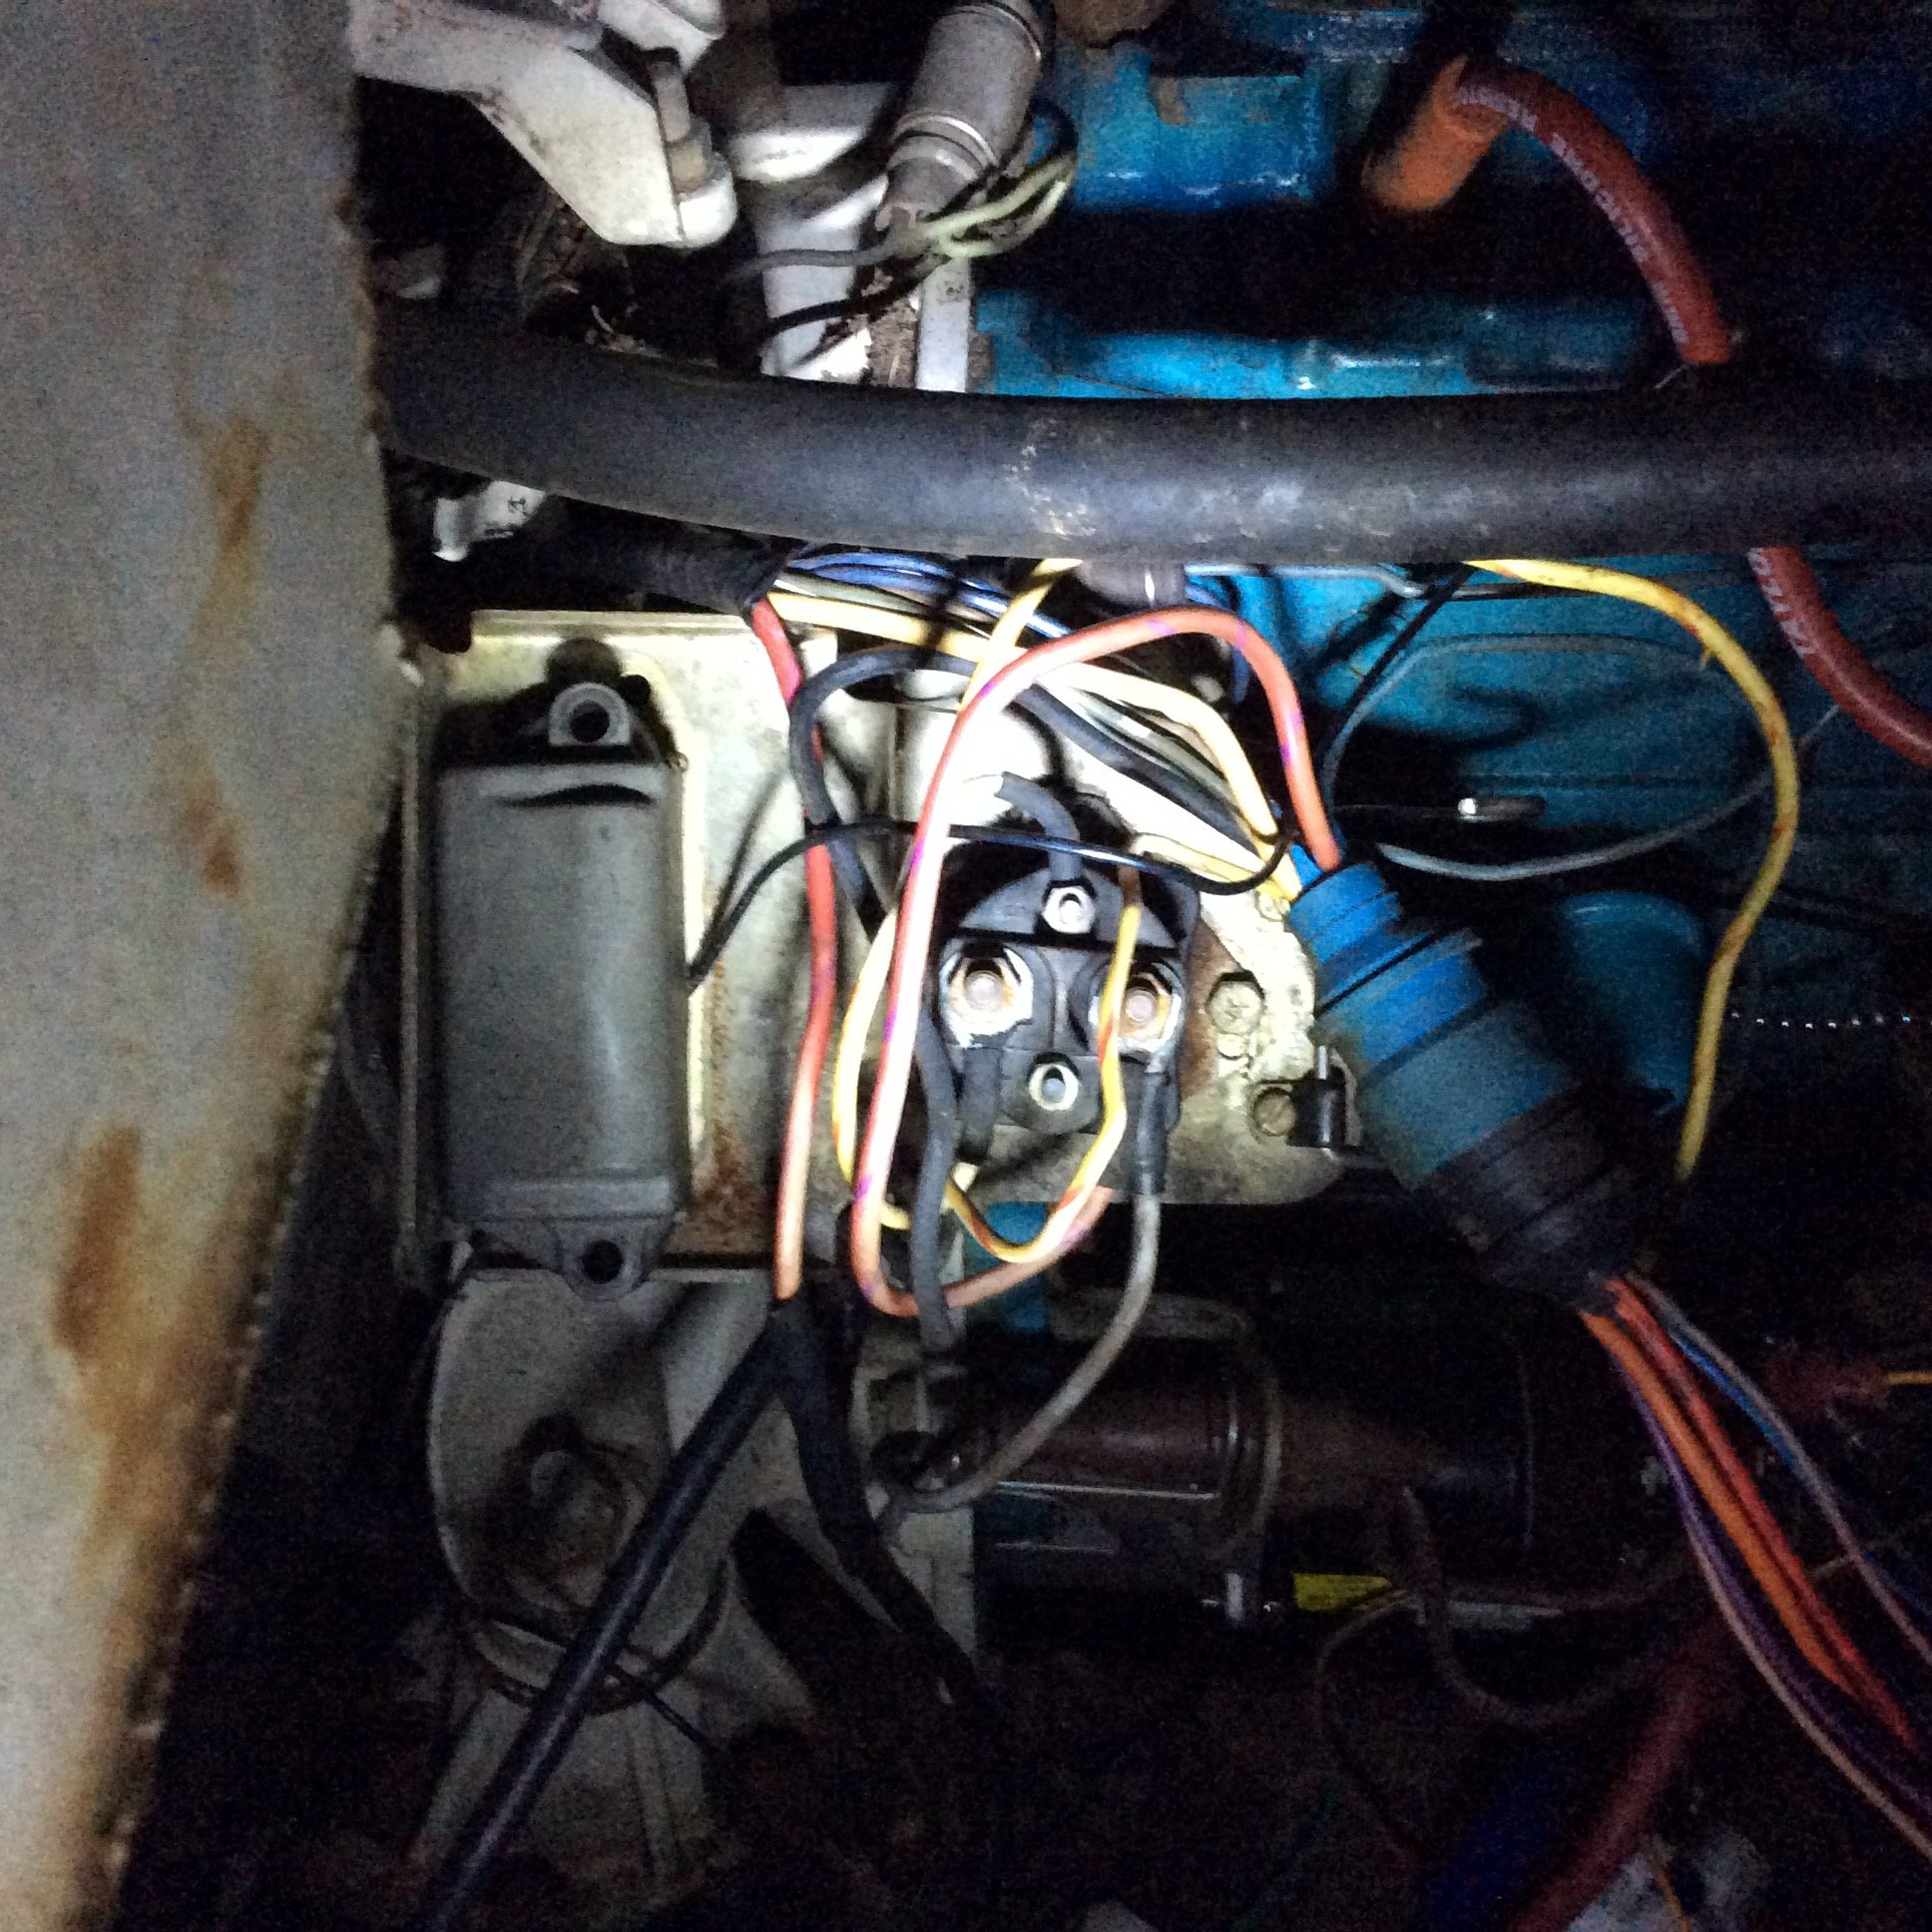 1983 Renken 25l Omc No Spark Boat Has Been Sitting A While Got 2 5l Wiring Diagram Imagejpeg